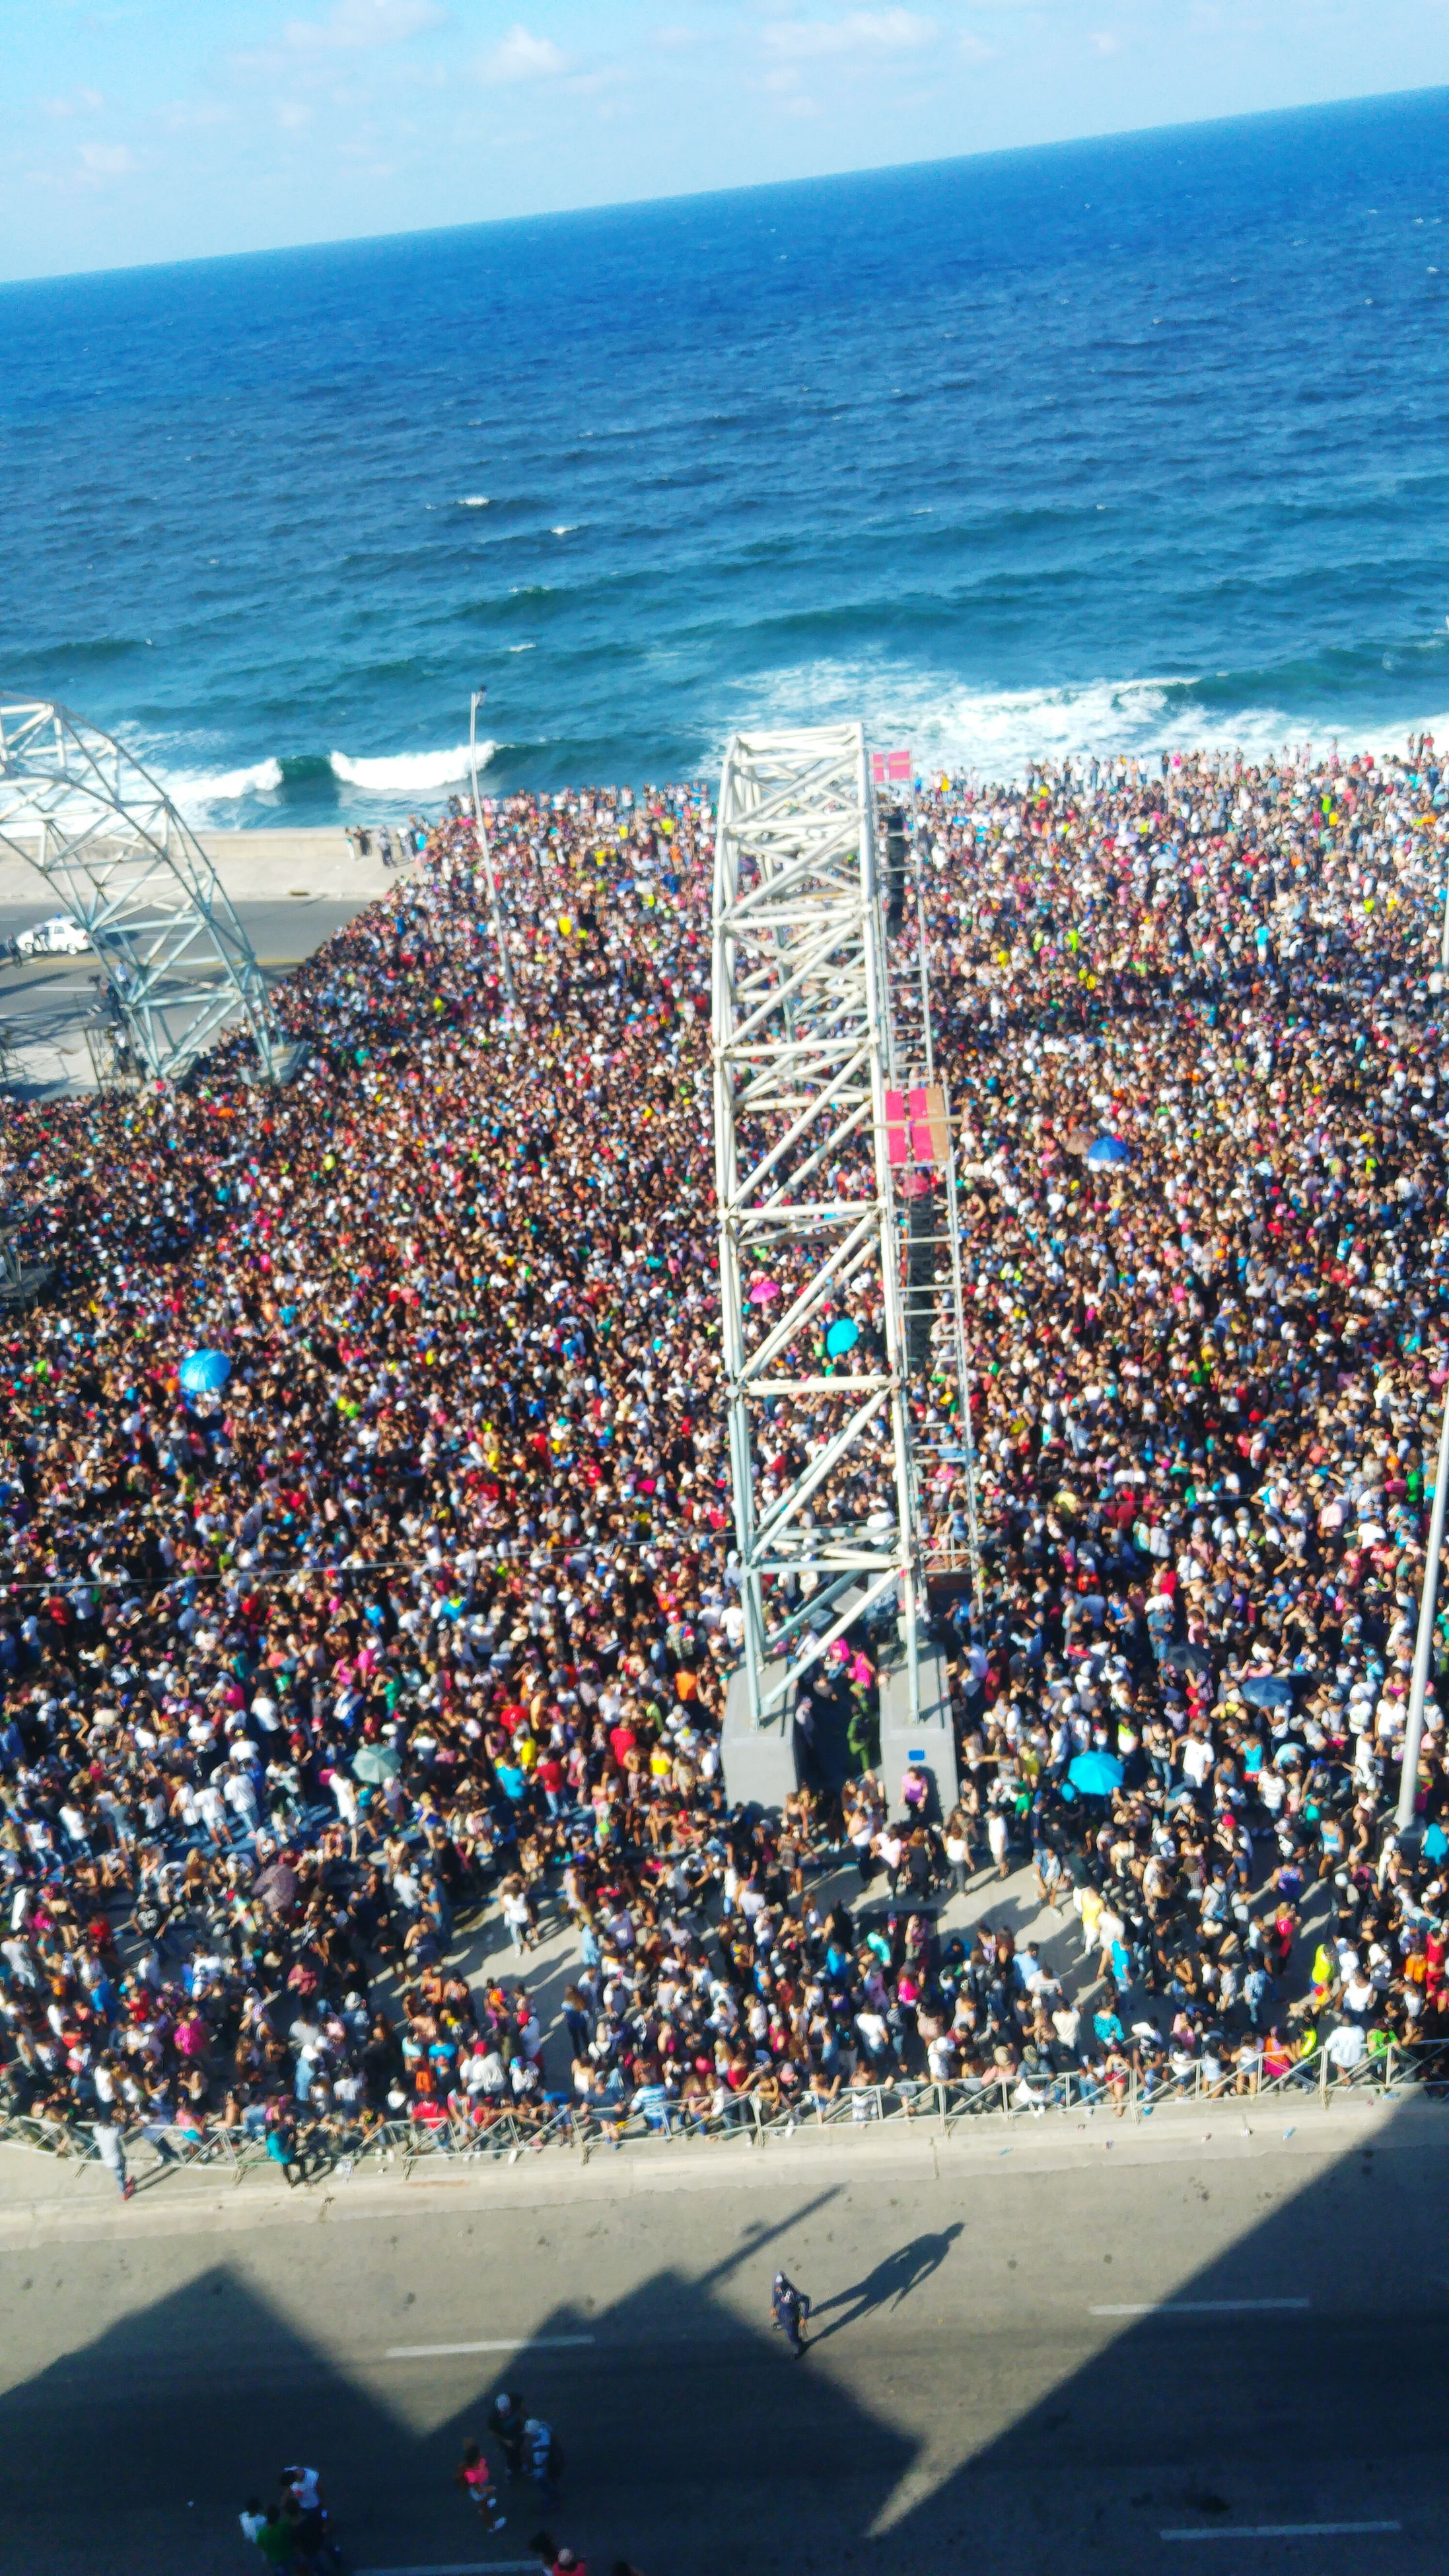 sea, water, horizon over water, large group of people, high angle view, beach, blue, crowded, shore, vacations, cityscape, city, built structure, tourism, outdoors, travel destinations, mixed age range, nature, travel